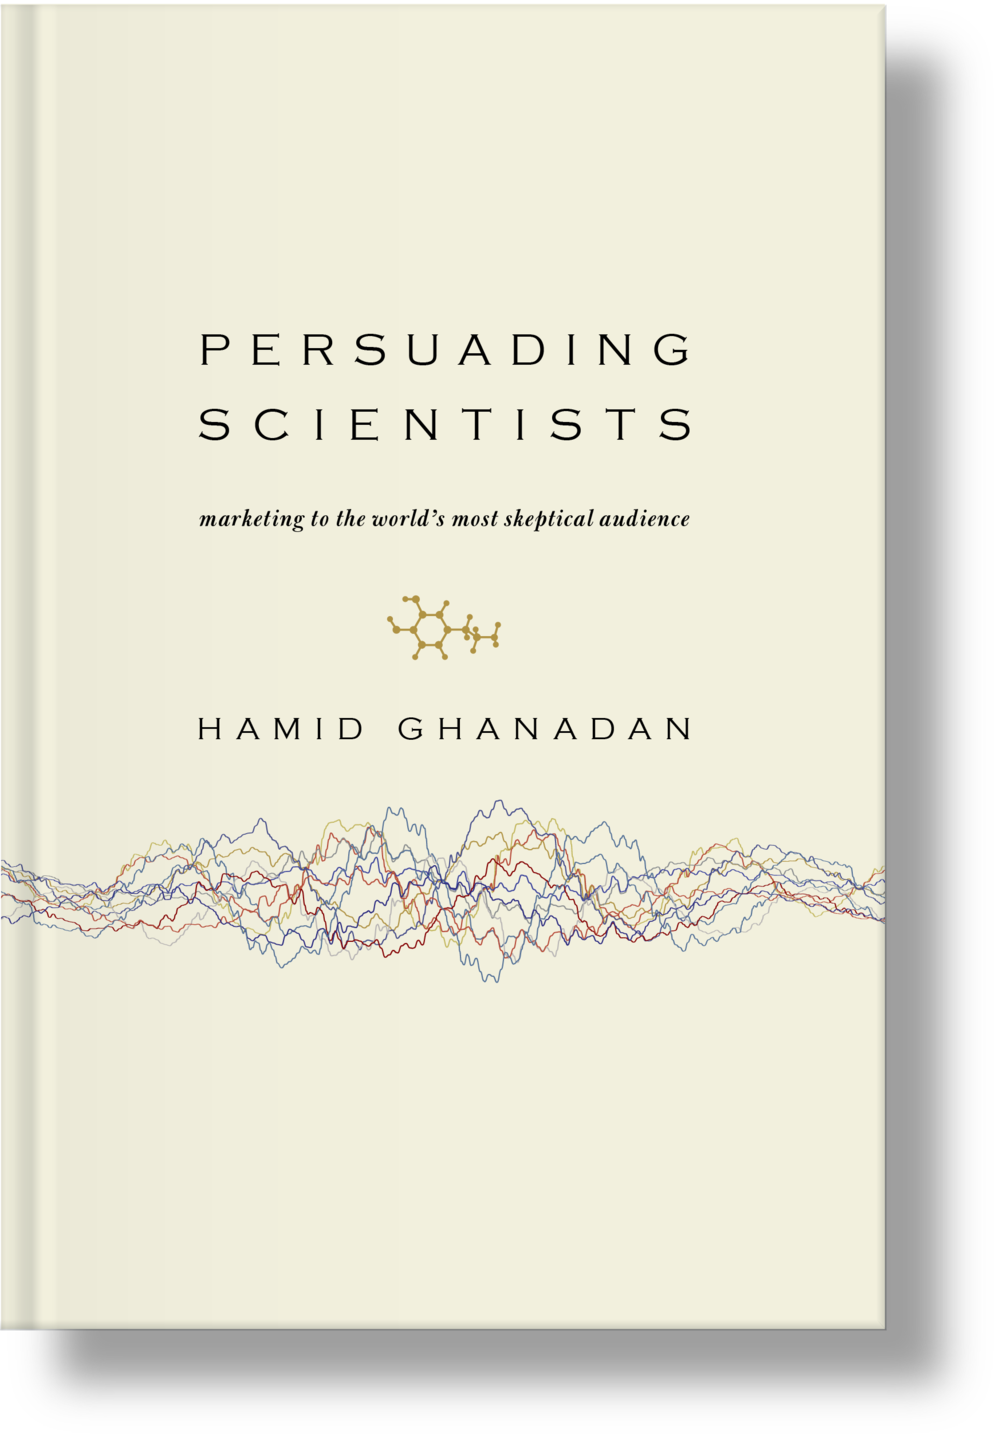 Persuading Scientists Book Linus Hamid Ghanadan